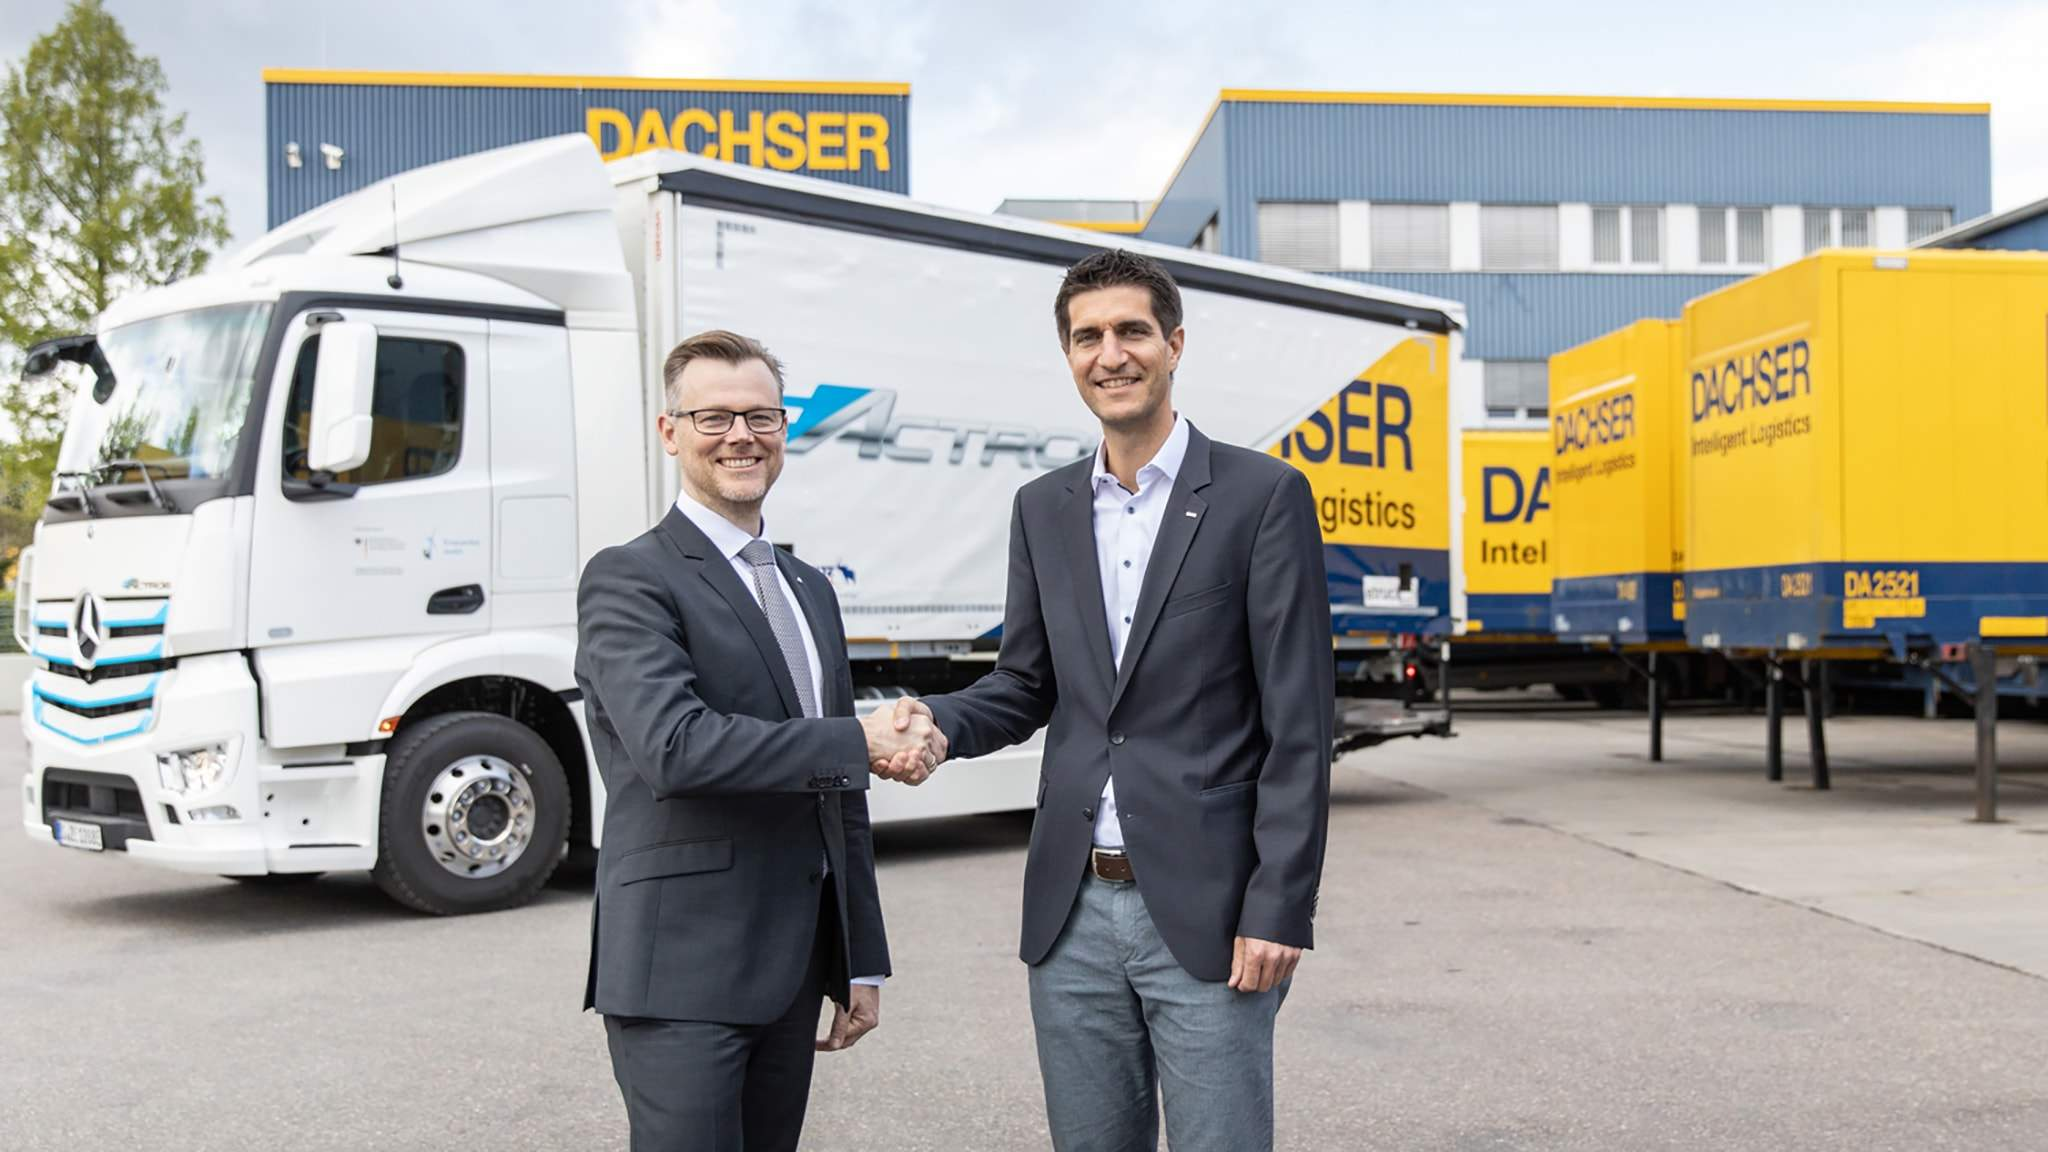 left to right: Martin Kehnen, Head of CharterWay Rental & Major Customer Management at Mercedes-Benz Trucks Germany hands over the keys to the Mercedes-Benz eActros to Markus Maurer, General Manager of DACHSER's Kornwestheim (Stuttgart) branch